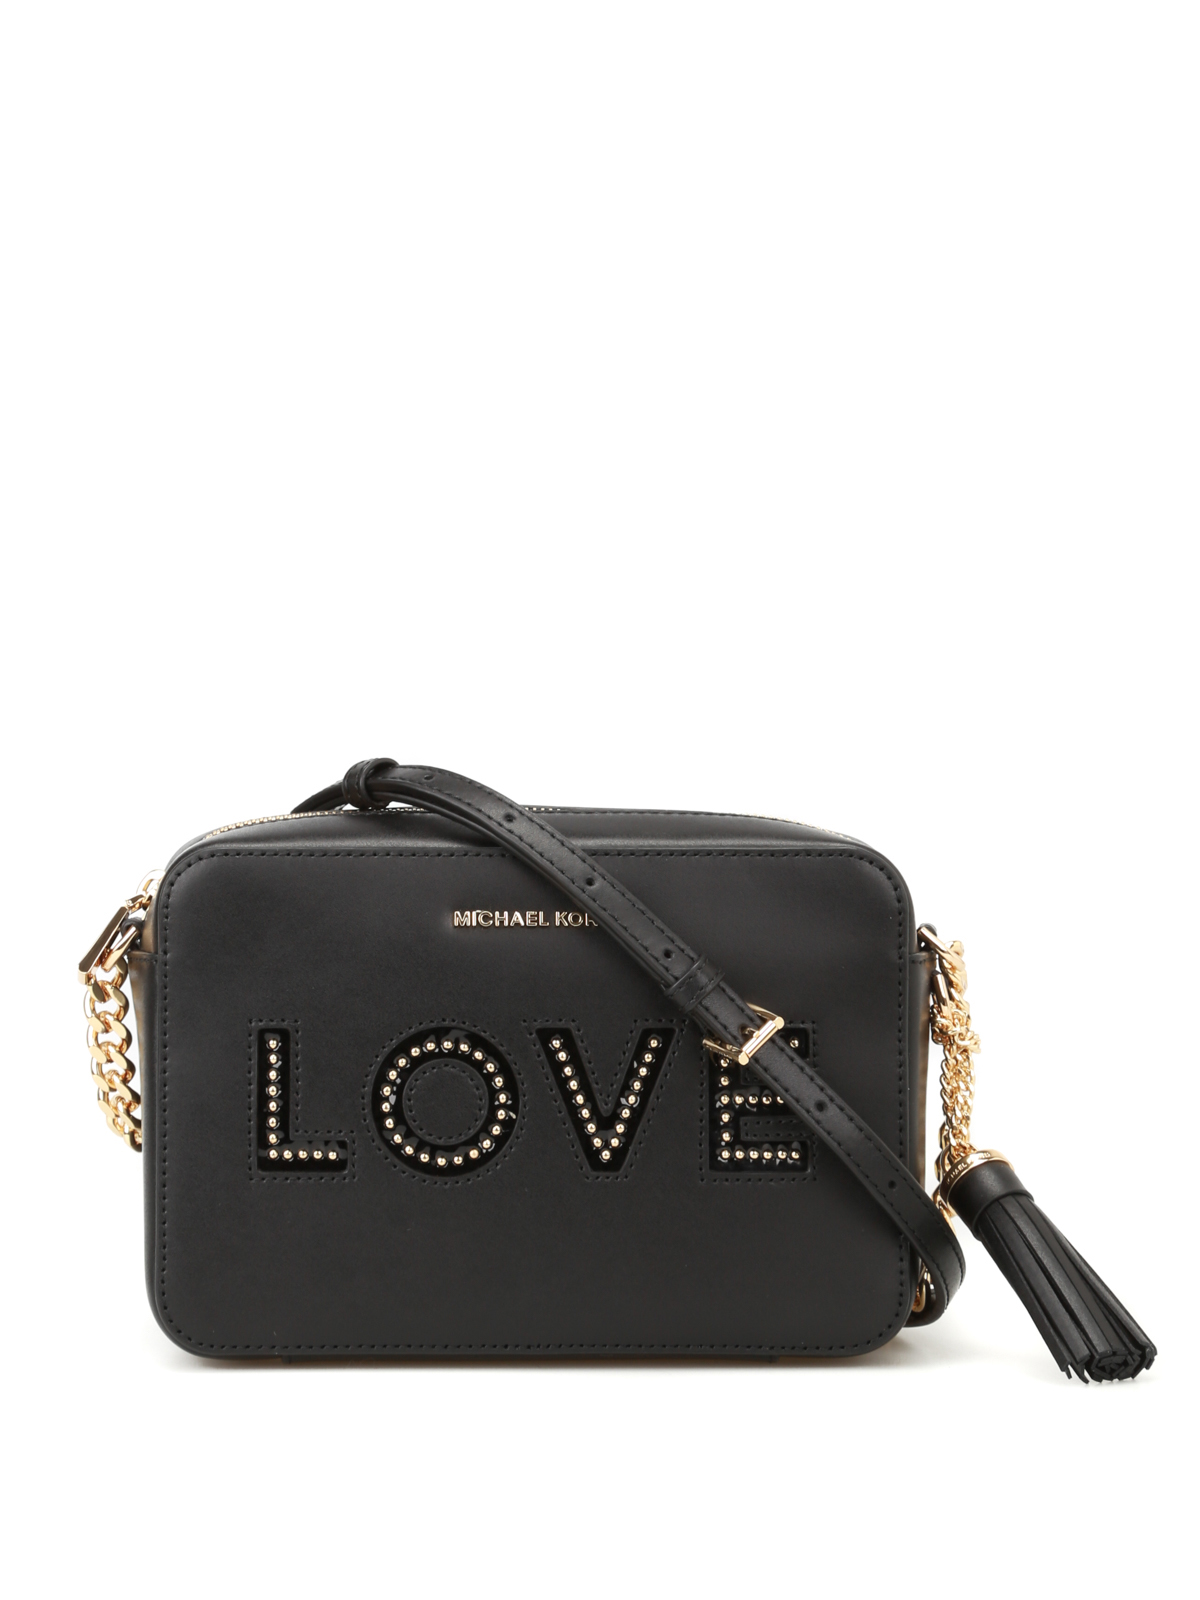 e402a28367d3 Michael Kors - Ginny Love black camera bag - cross body bags ...